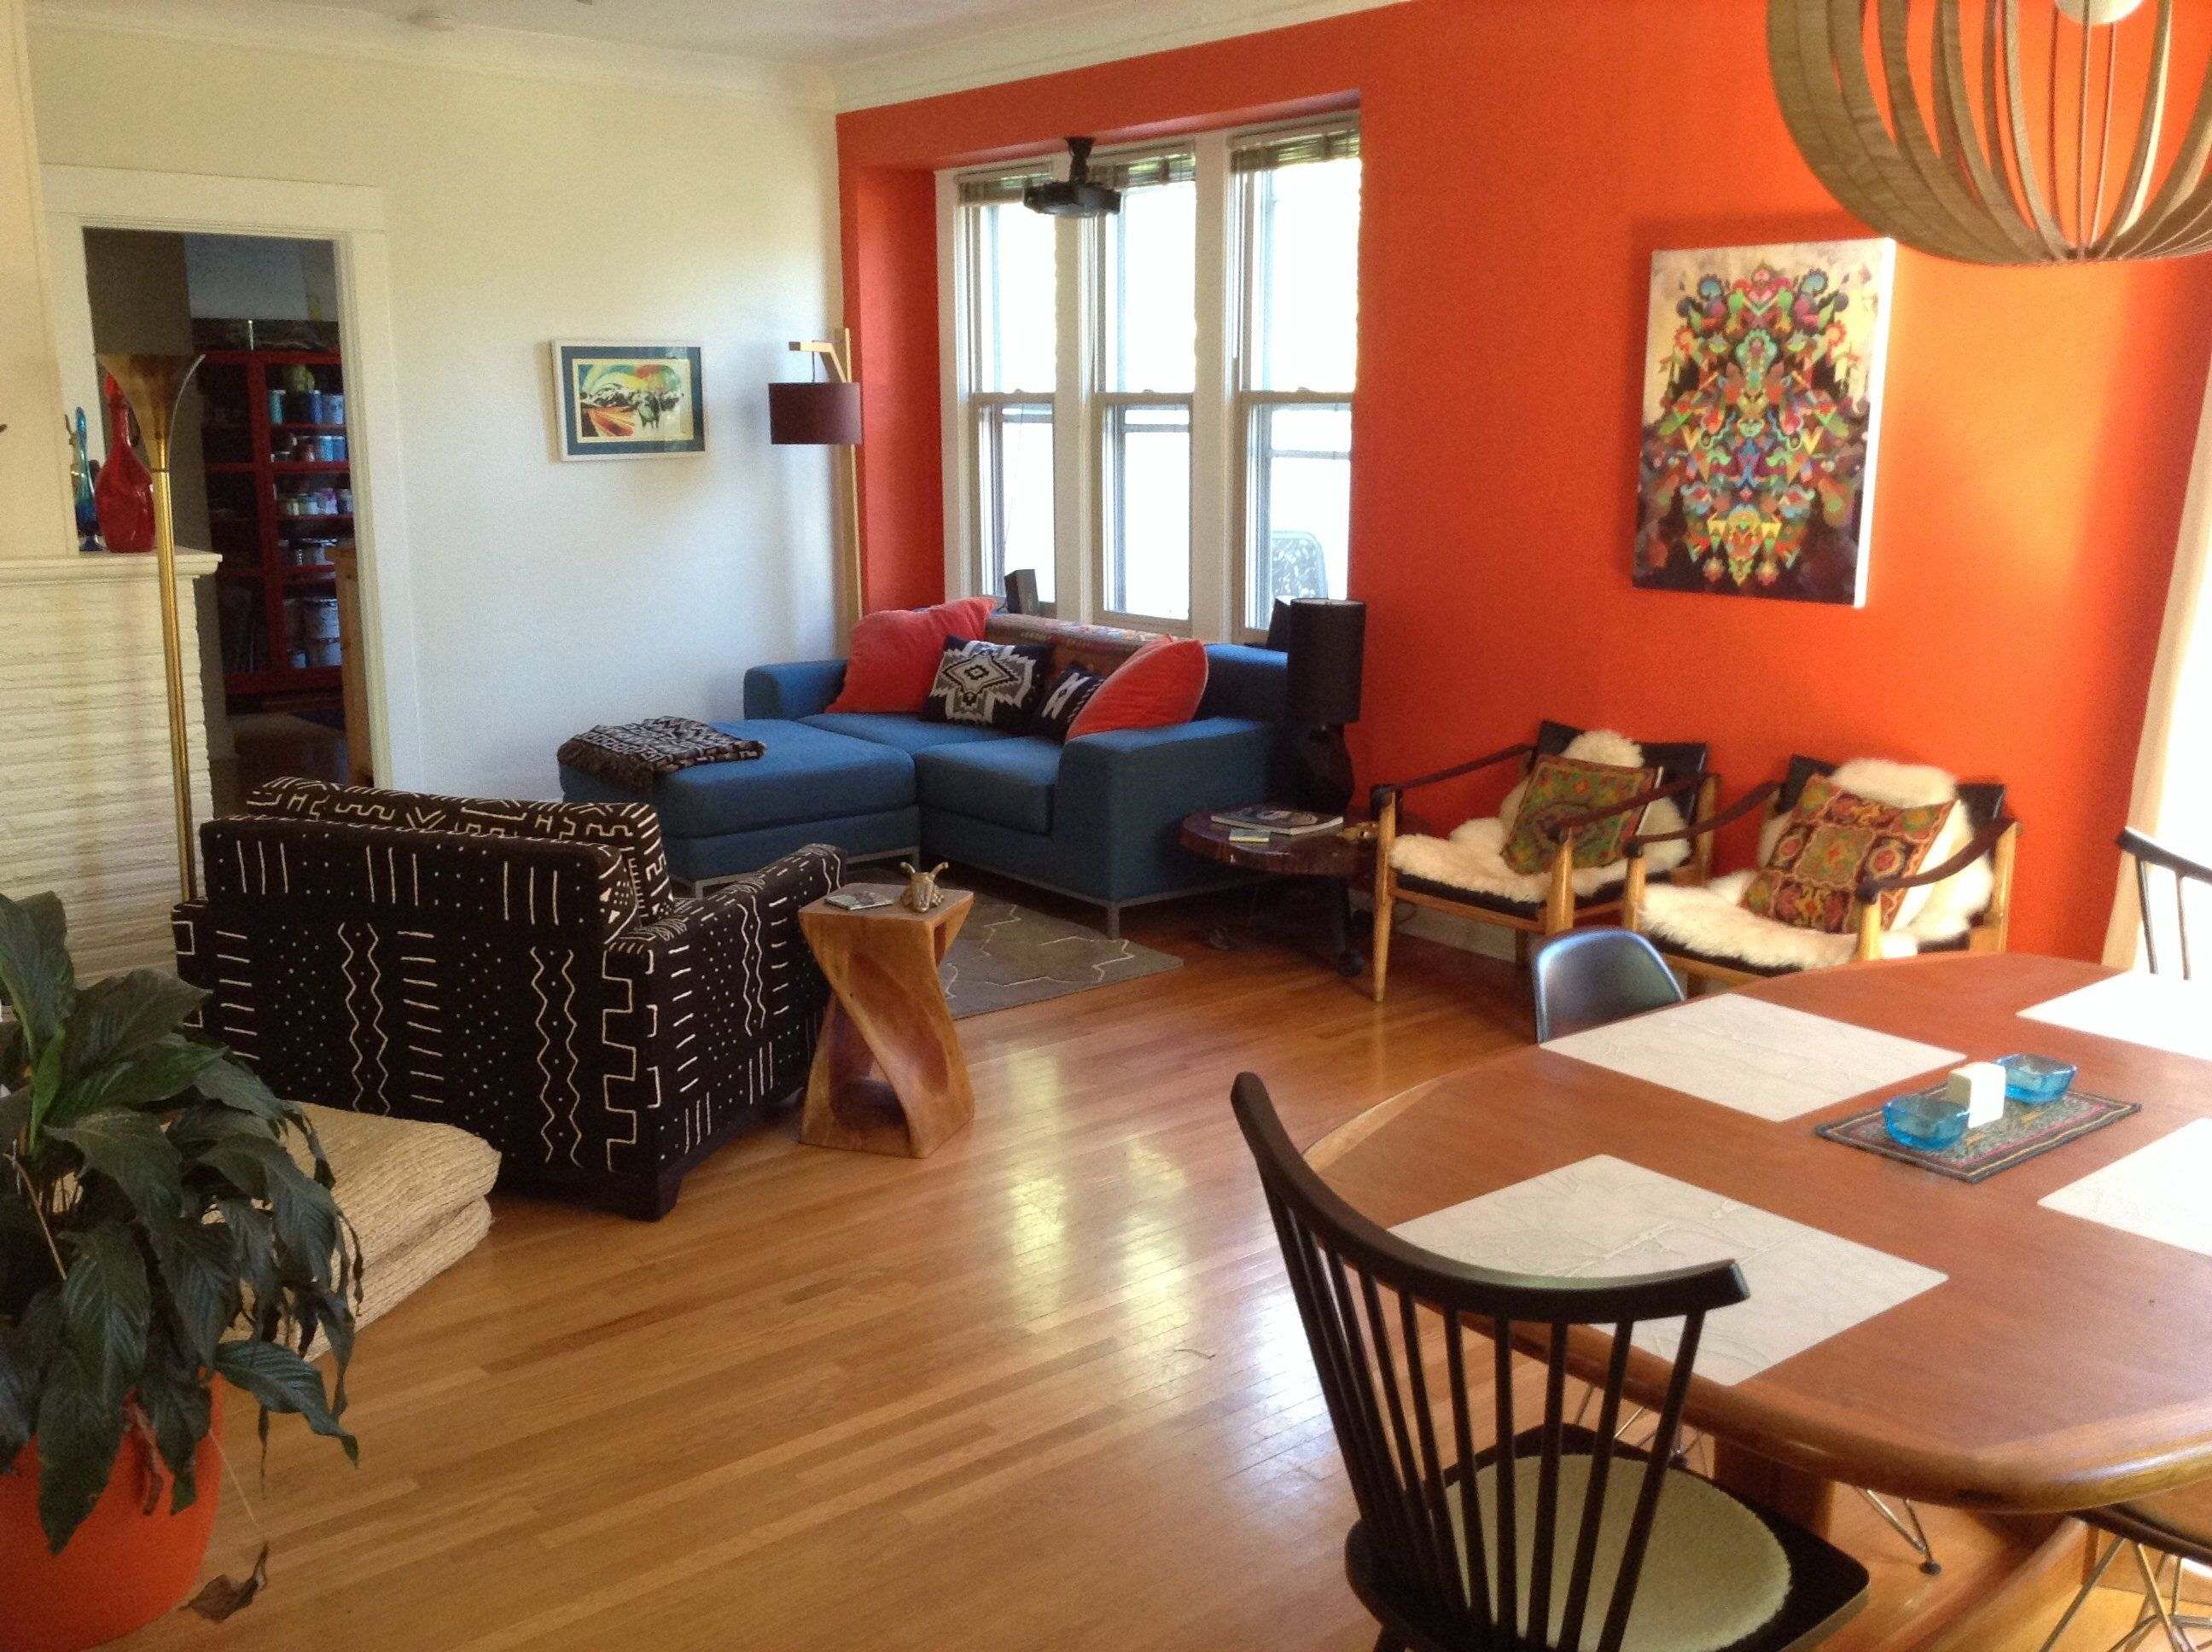 Paint Colors That Match This Apartment Therapy Photo SW 6883 Raucous Orange 6253